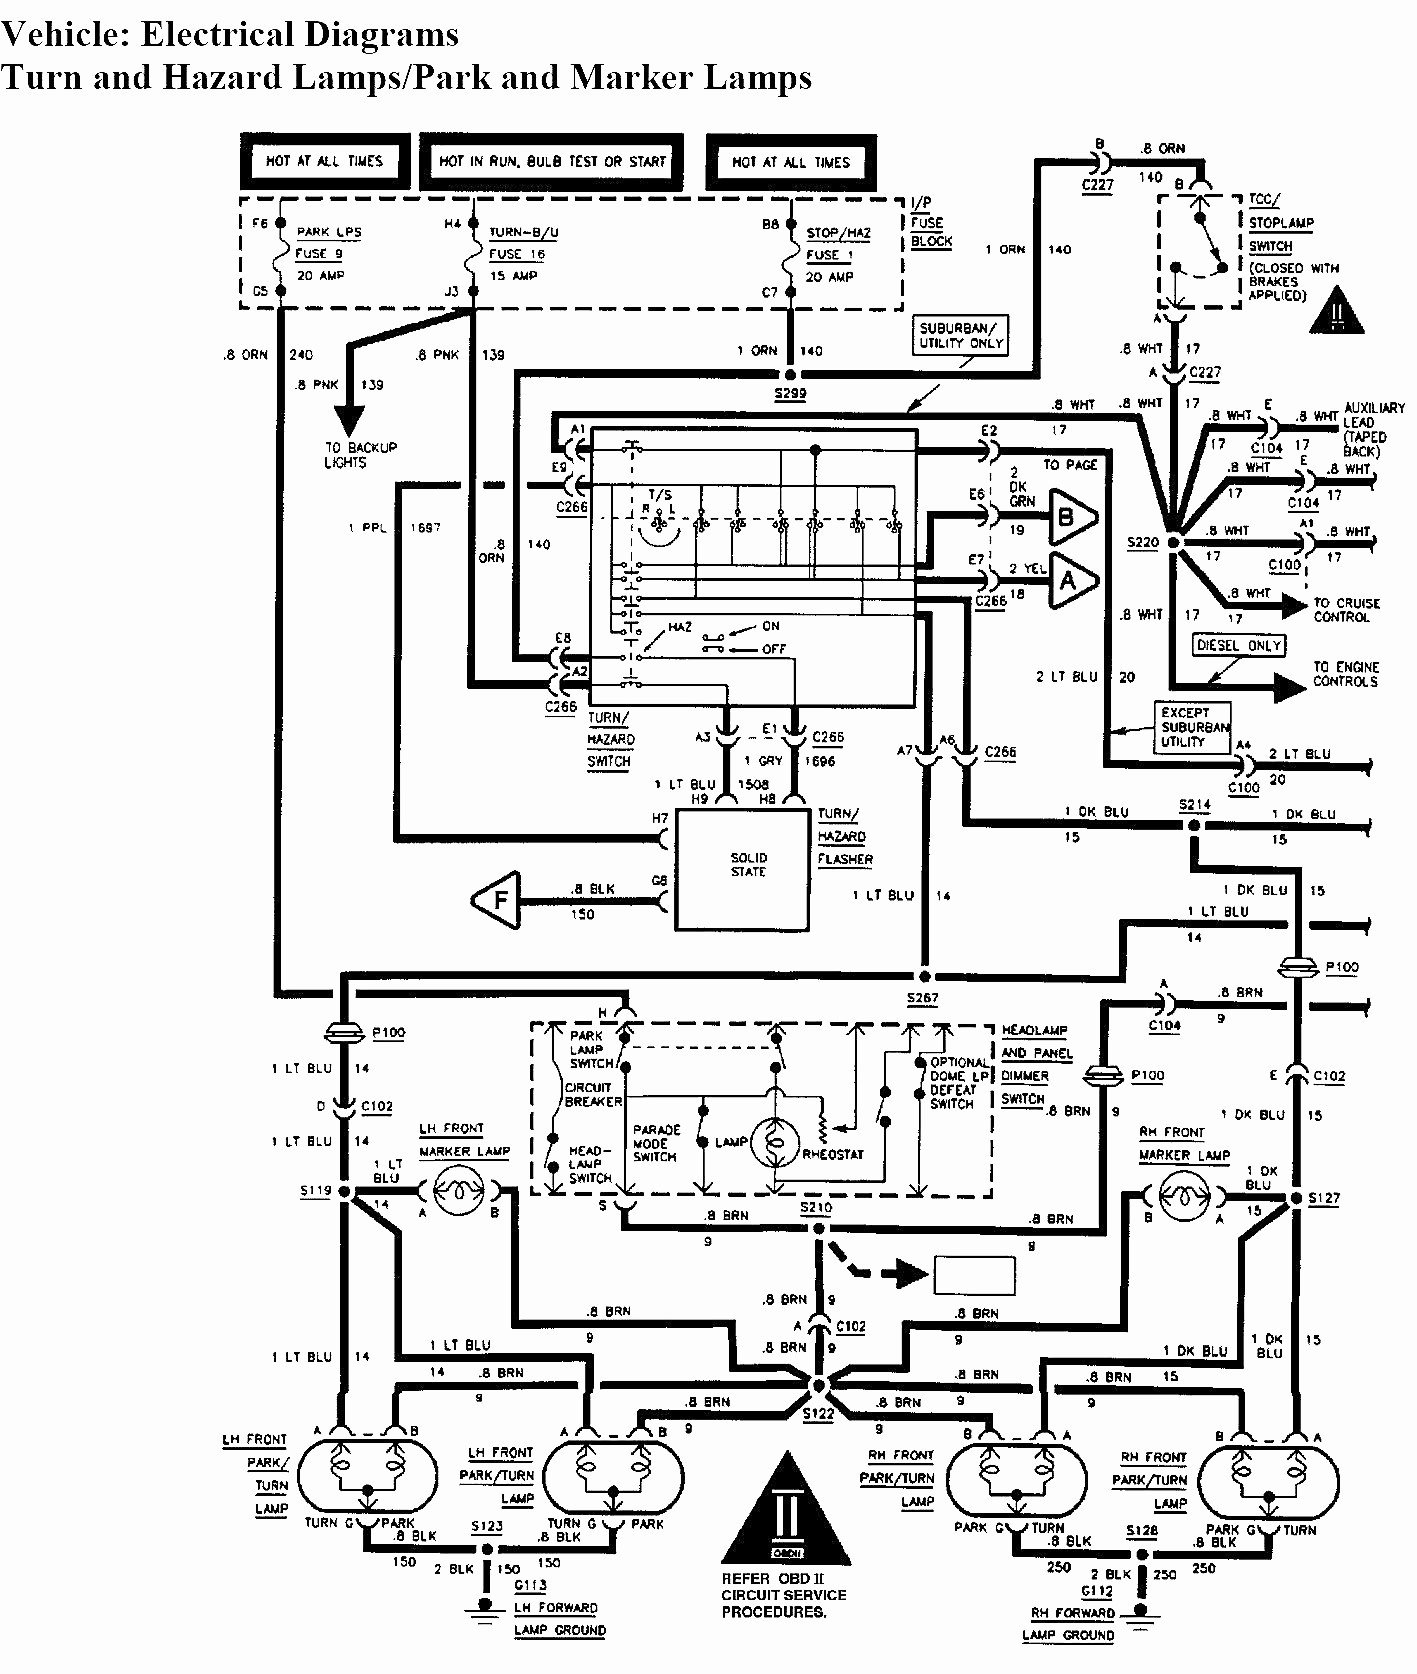 Full Size of Wiring Diagram Brake Light Wiring Diagram Lovely Beautiful Brake Light Wiring Diagram